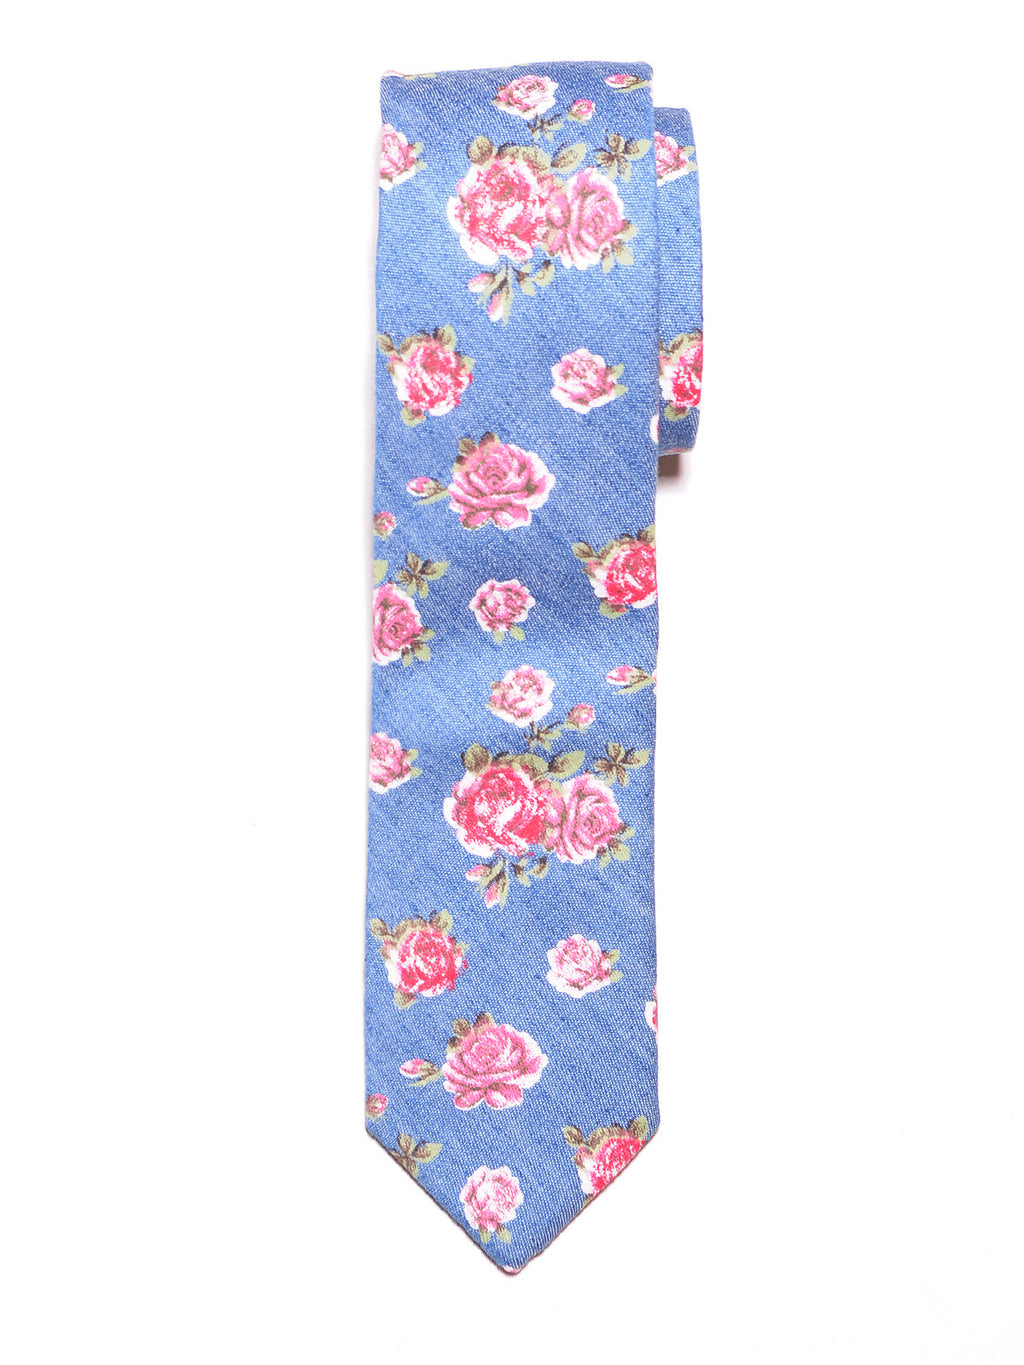 Chambray Floral Print Cotton Tie